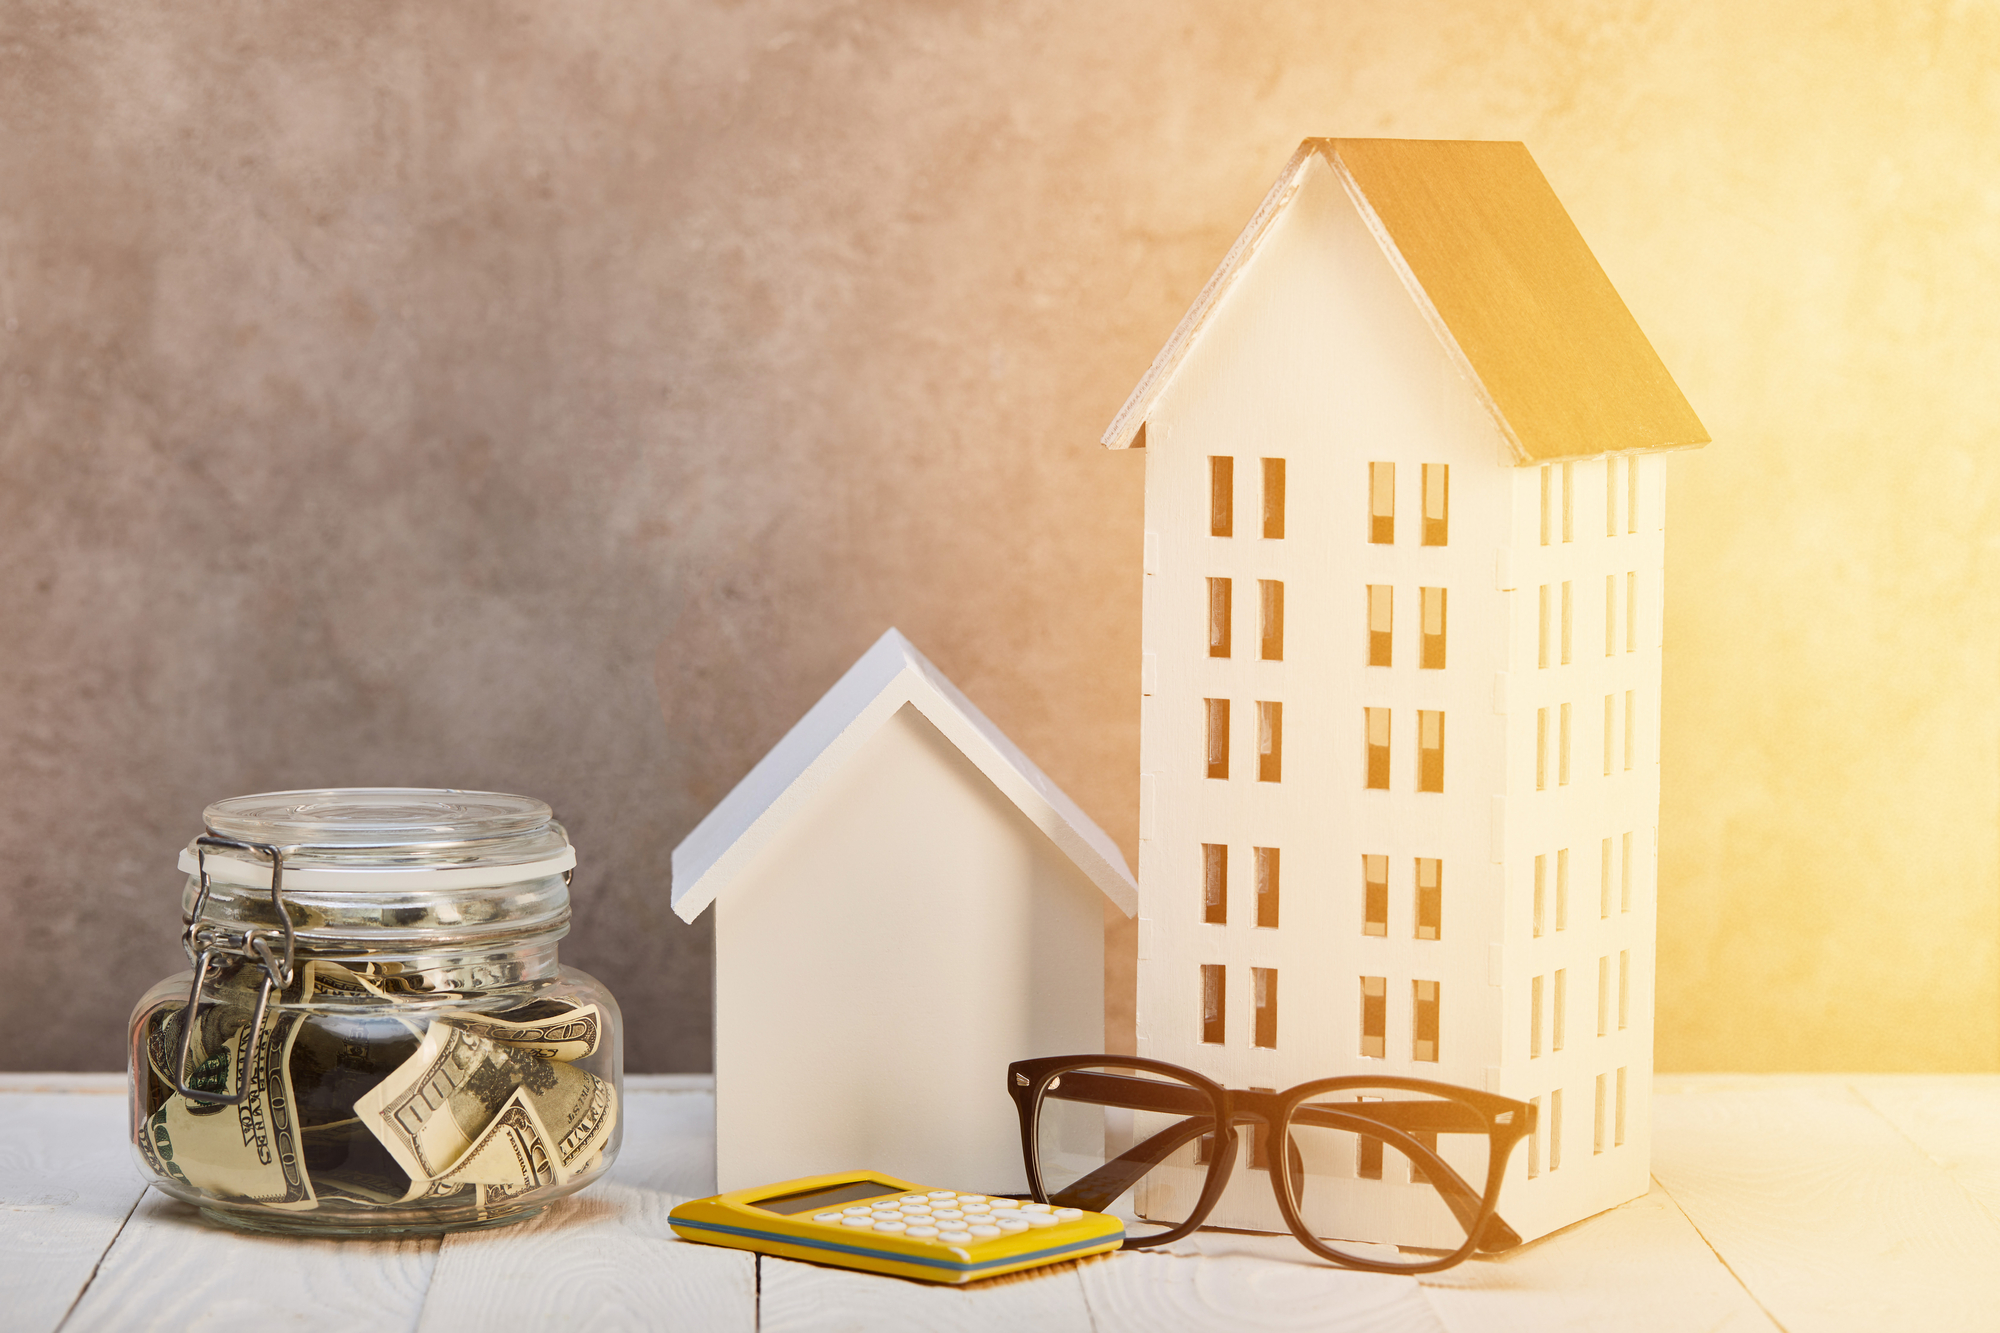 Houses models on white wooden table with glasses, calculator and moneybox in sunshine, real estate concept